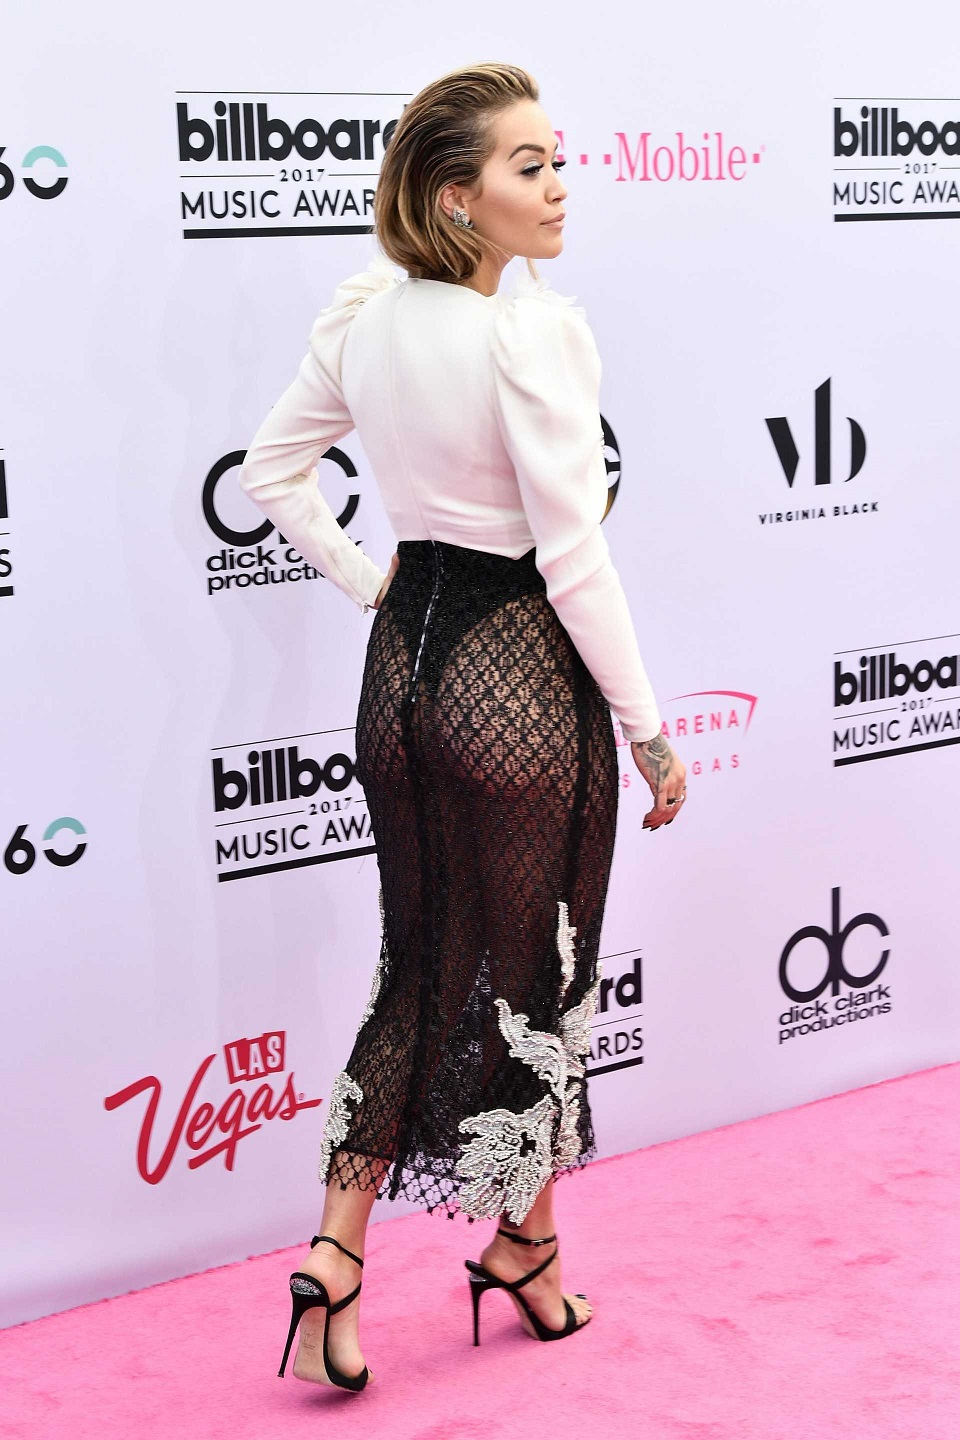 Rita Ora bares pert derriere at the 2017 Billboard Music Awards